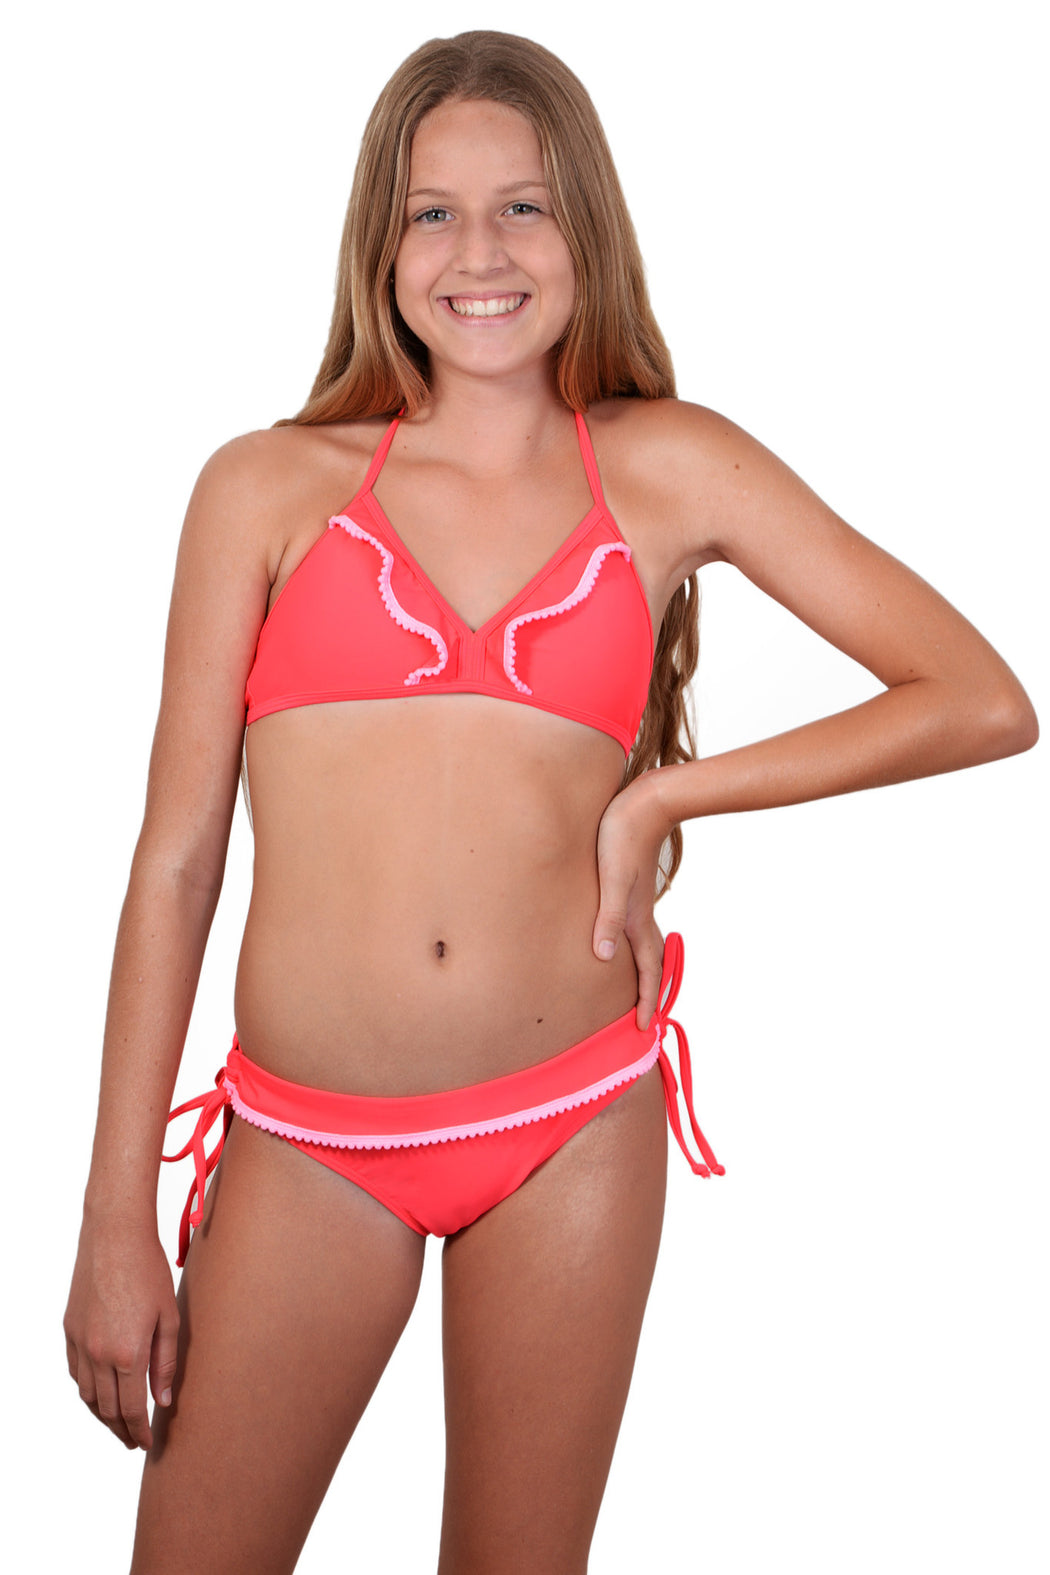 Fiesta colour Finch Girls bikini with bralette top and hipster bottoms